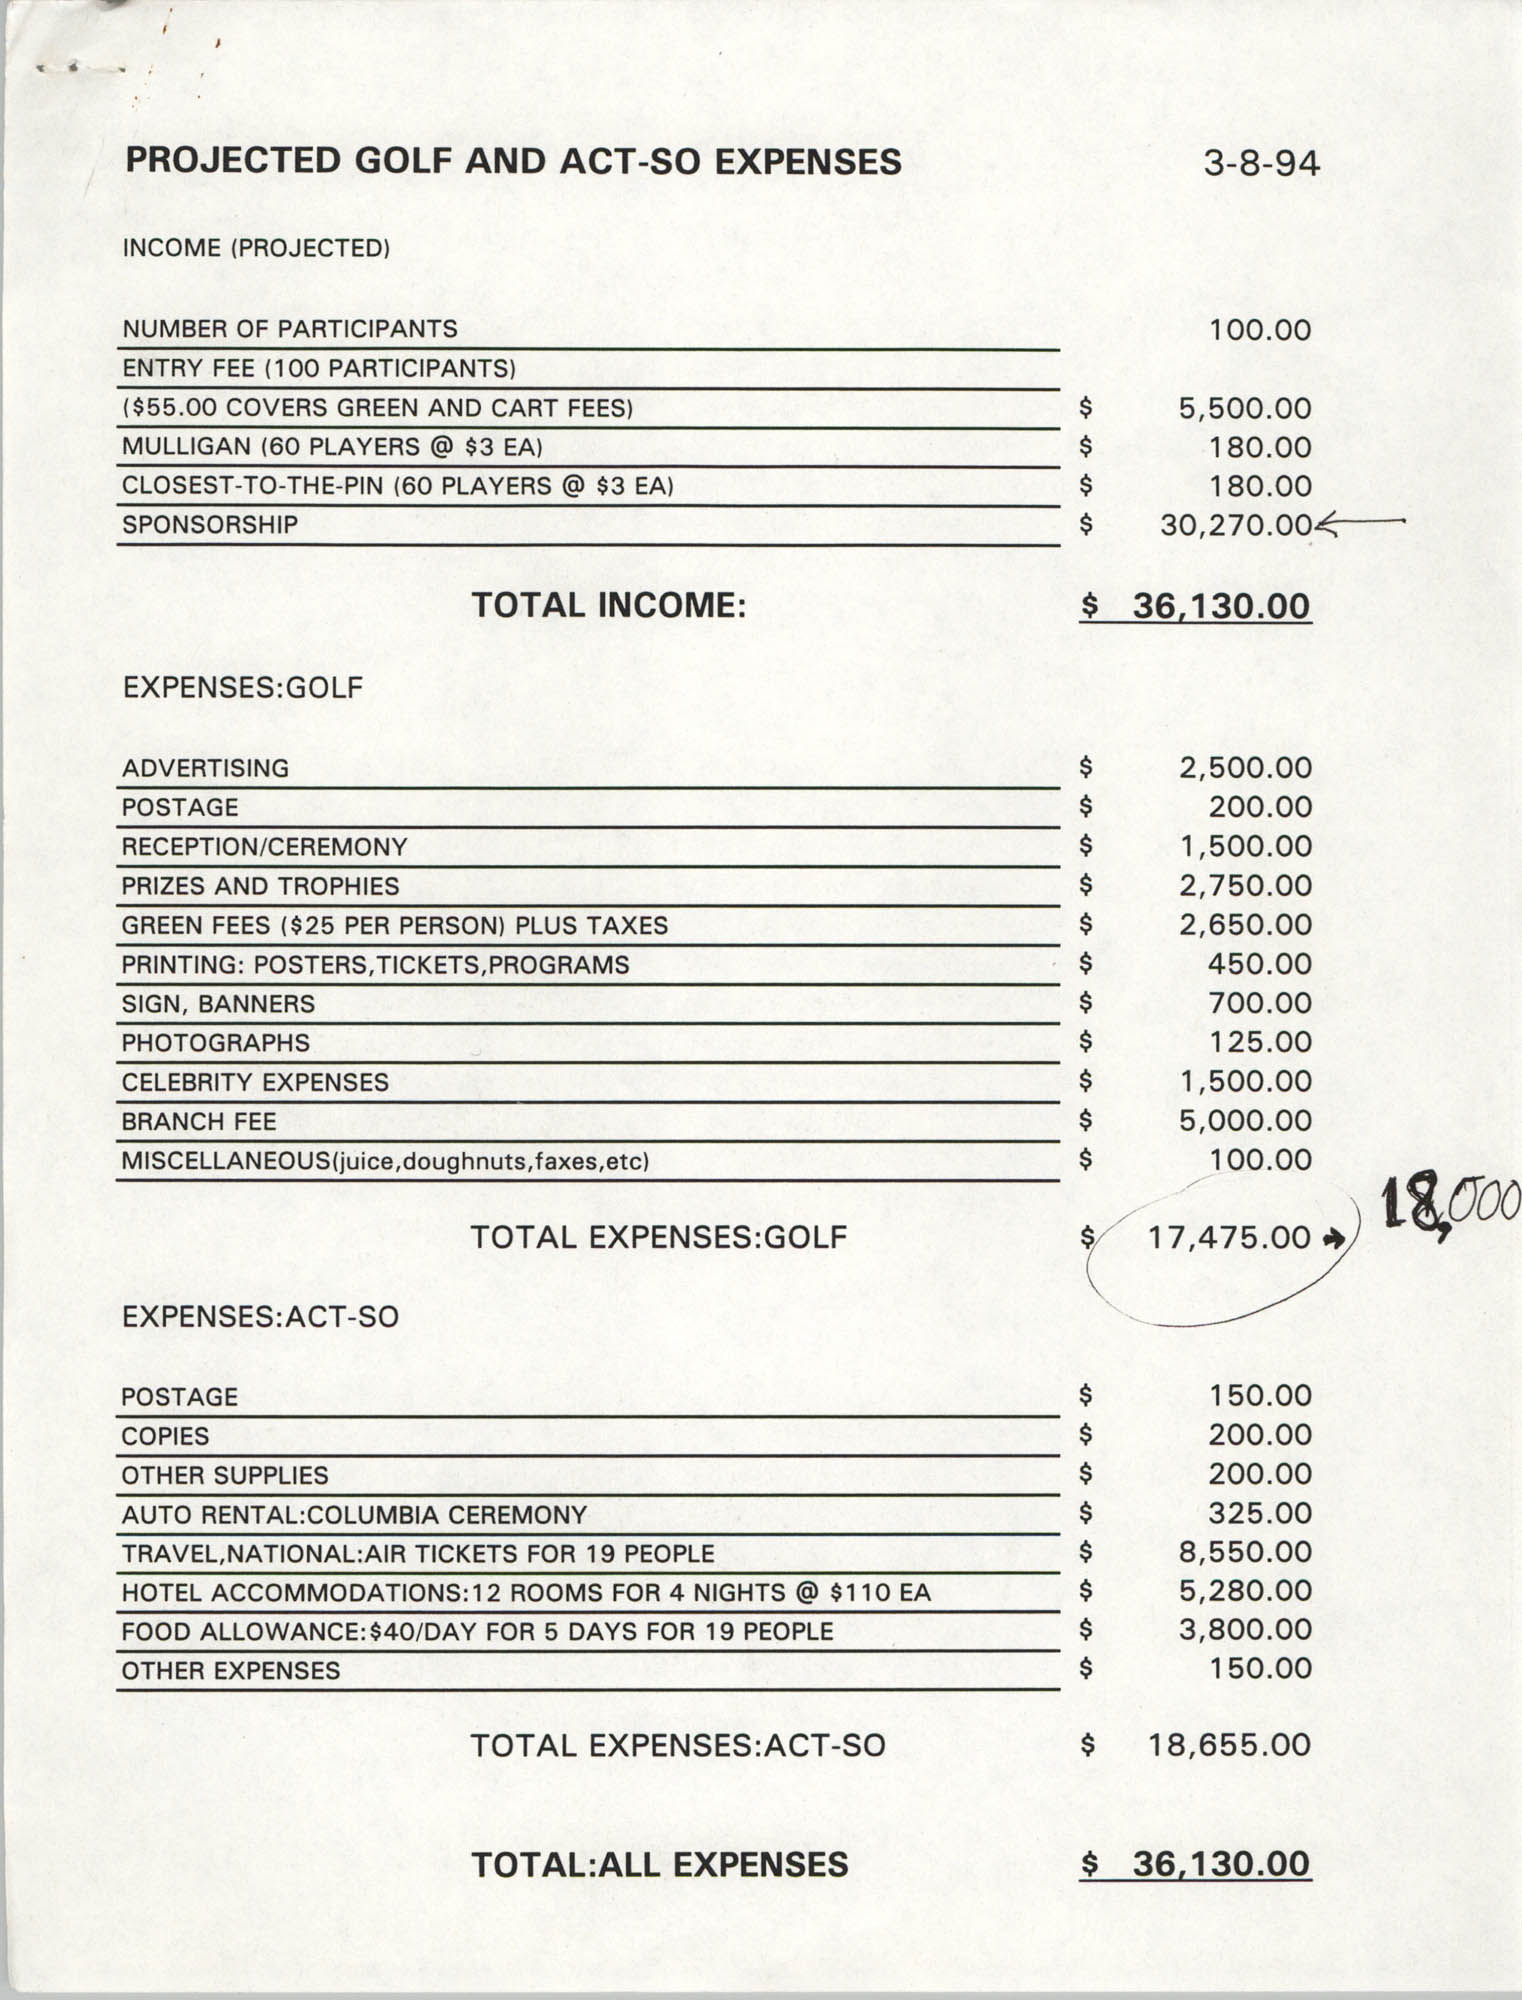 Project Golf and ACT-SO Expenses, March 8, 1994